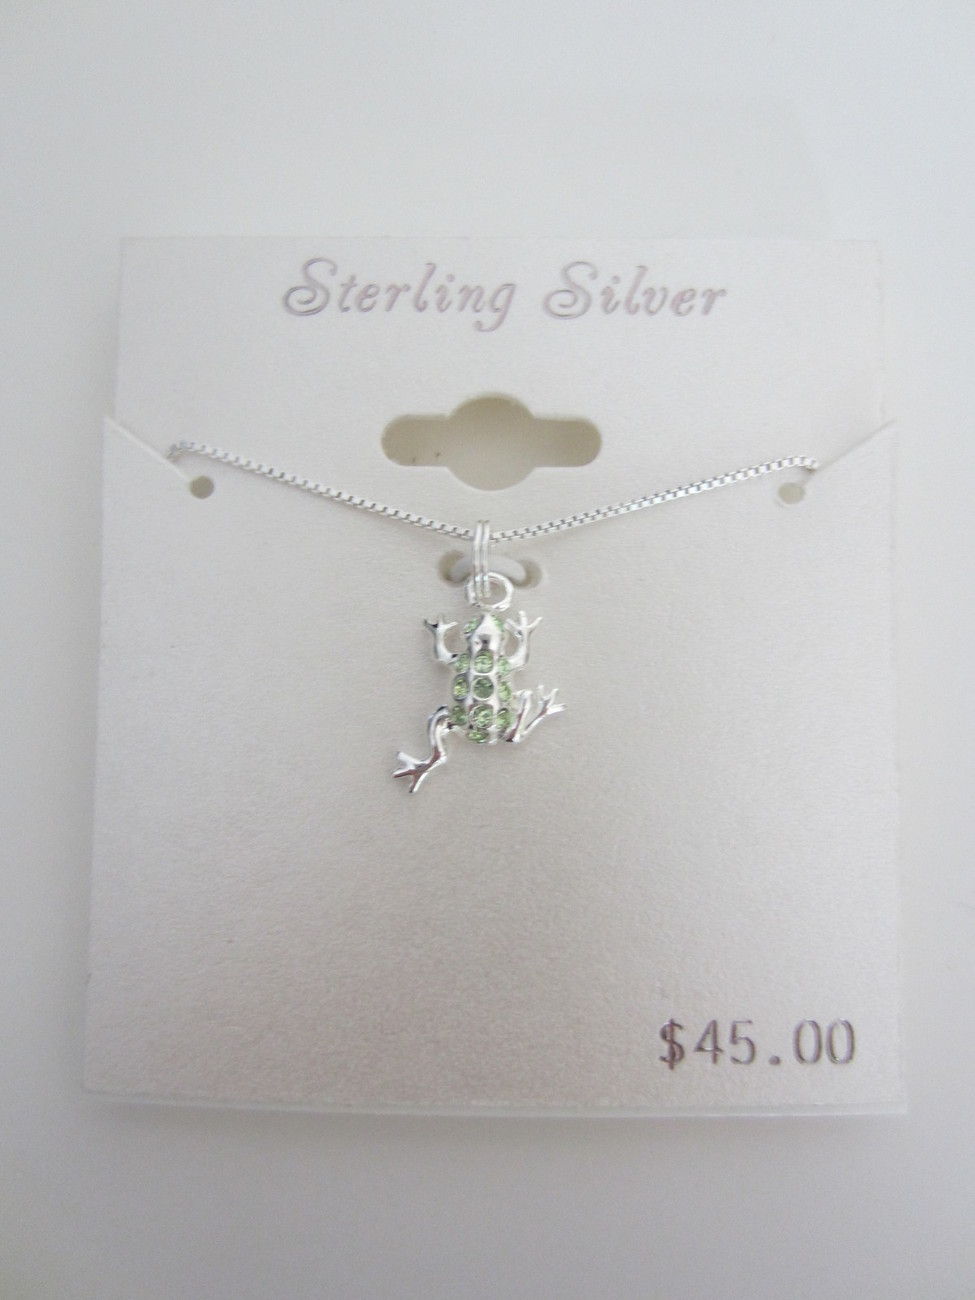 Adorable Sterling Silver Frog Pendant with Light Green Stones SO CUTE!